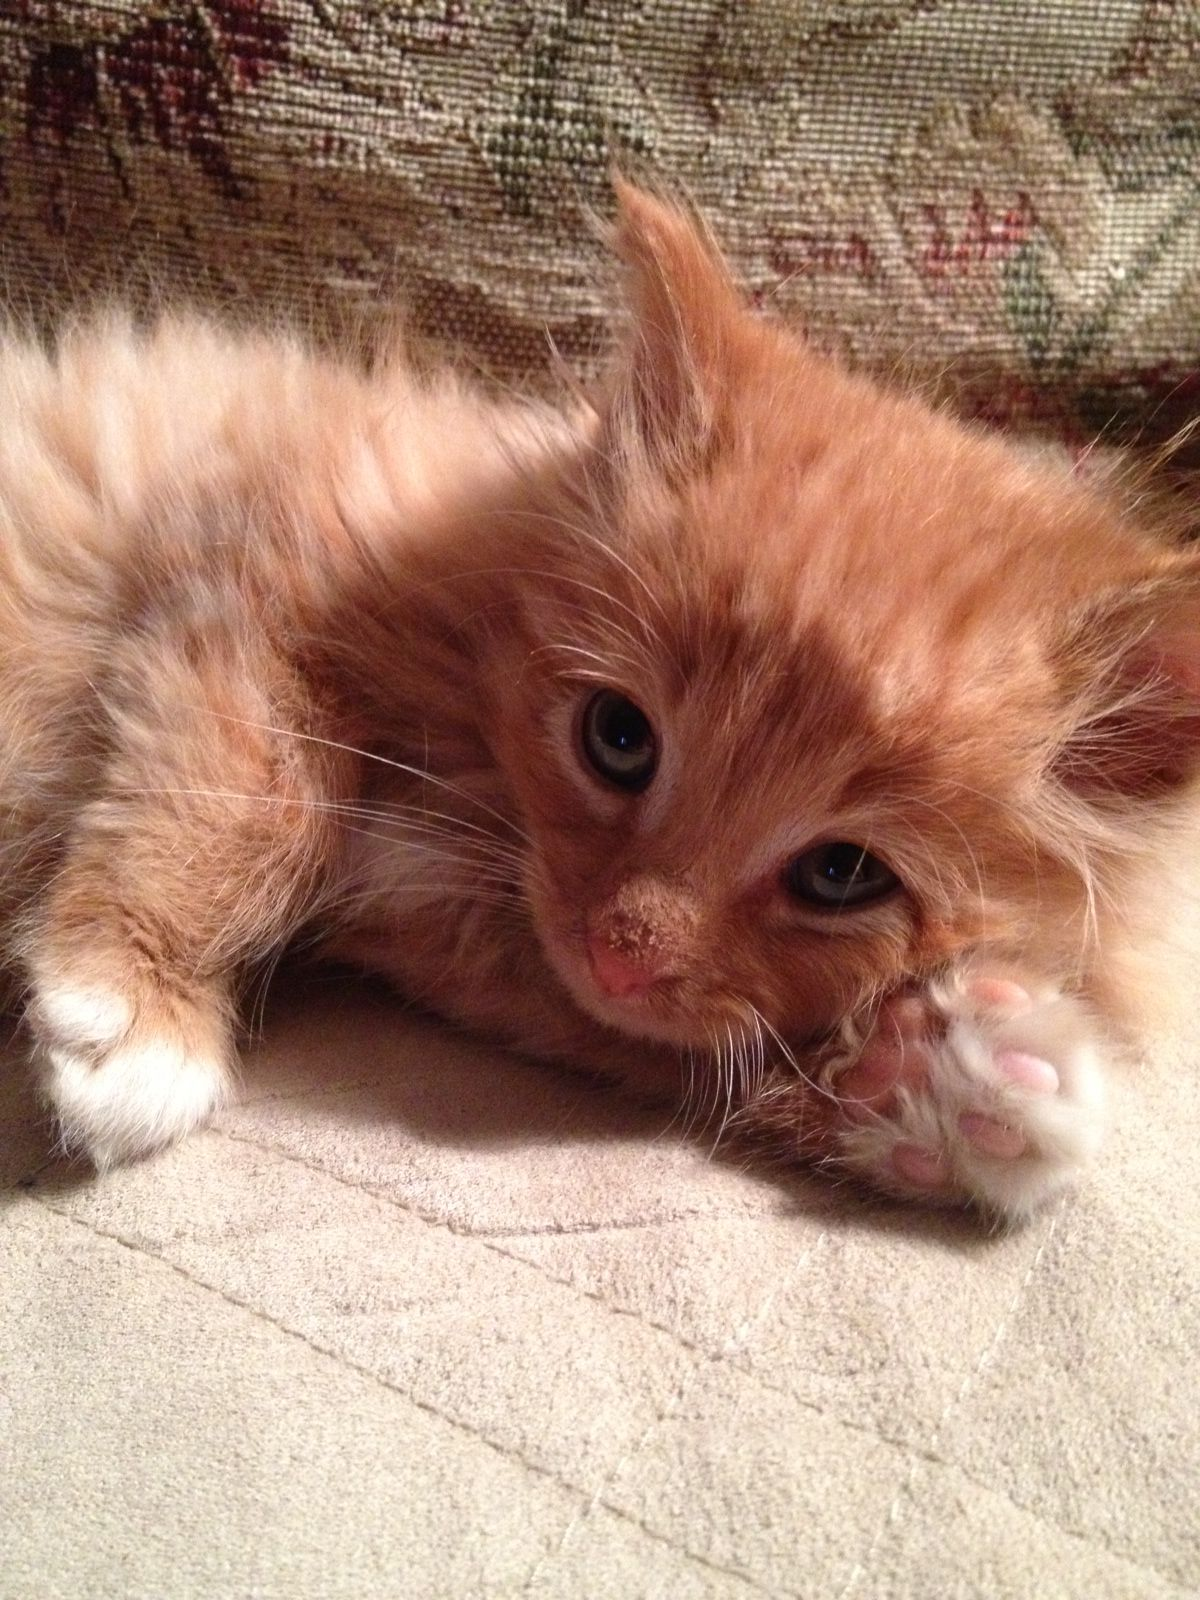 Love So Cute 4 Week Old Long Haired Orange Kitten Orange Kittens Kitten Animals